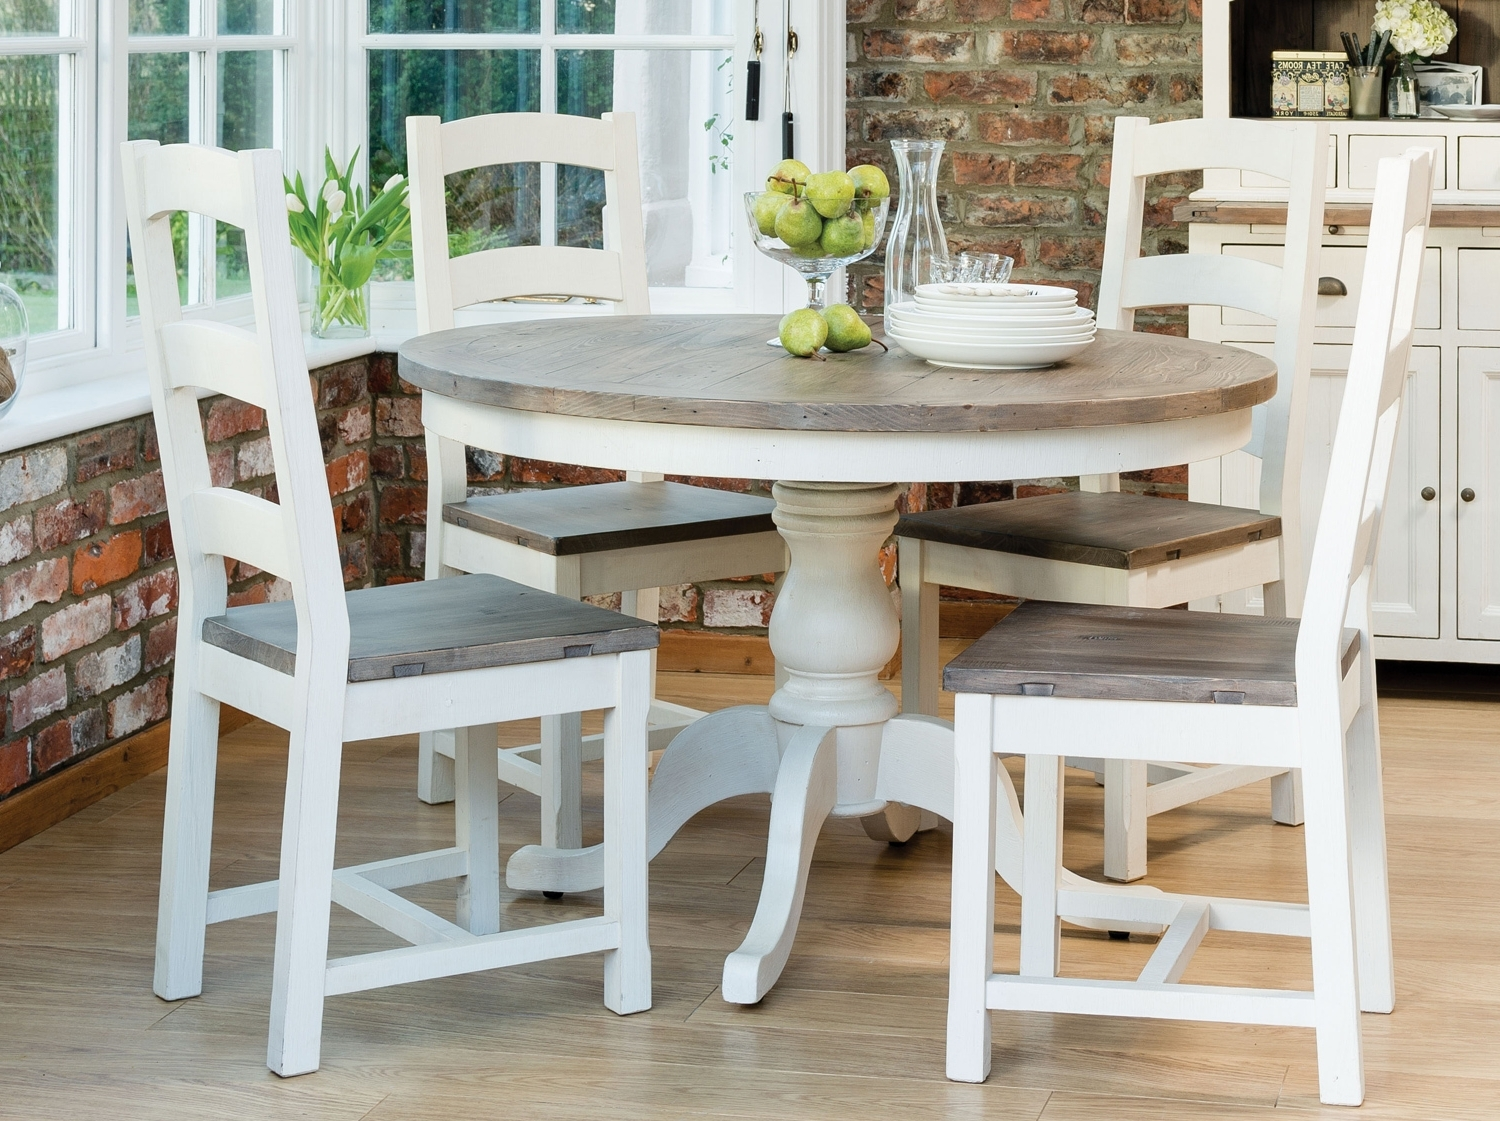 French Country Round Dining Table From Dansk Regarding Recent French Country Dining Tables (View 2 of 25)